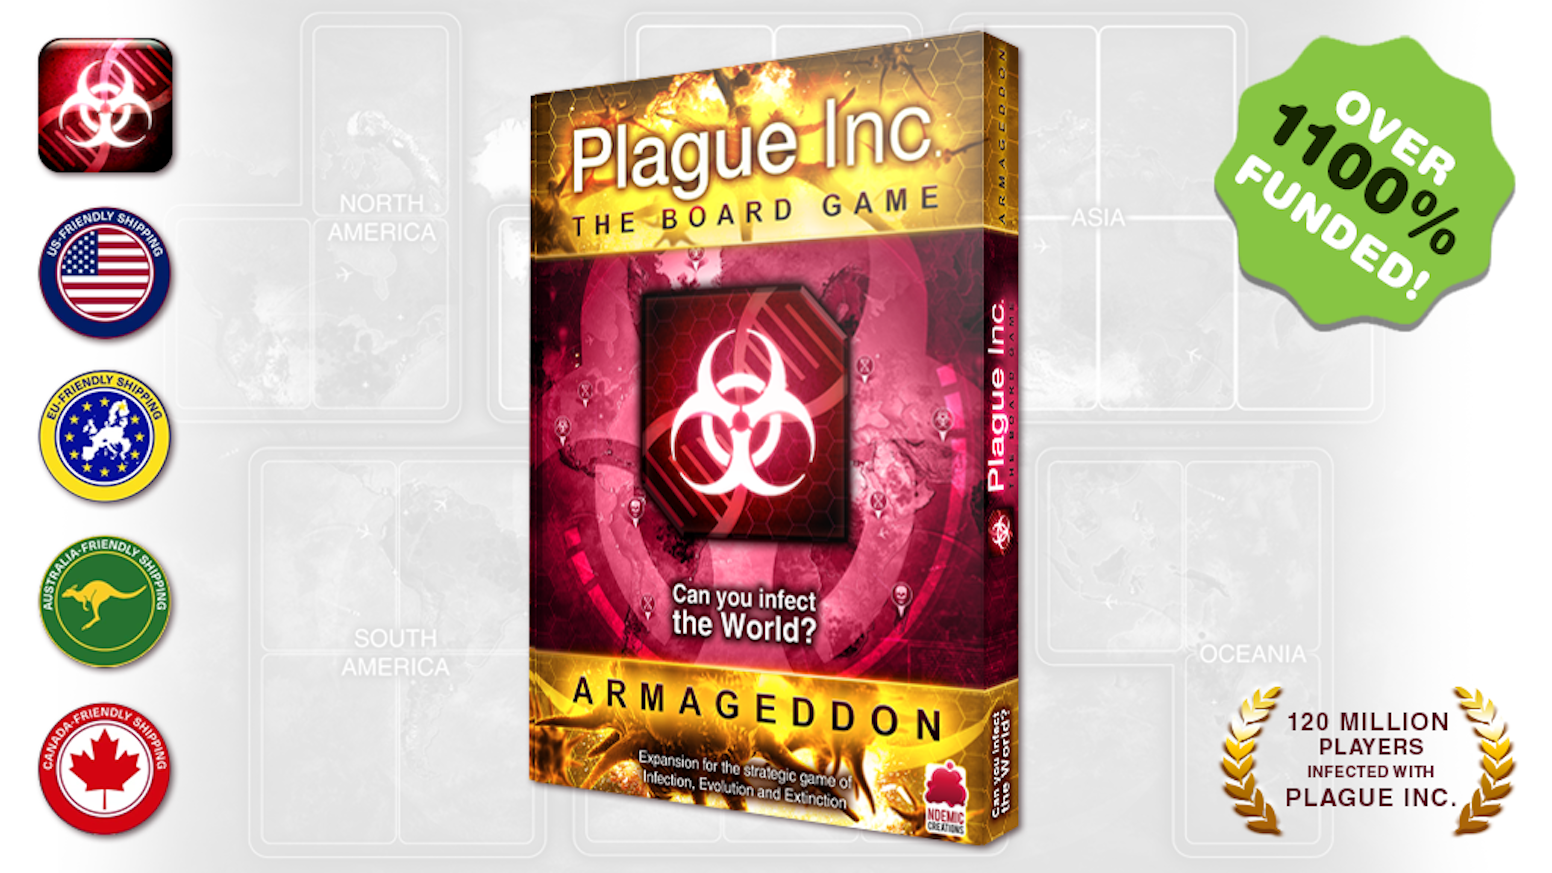 The first major expansion for Plague Inc: The Board Game is here. Armageddon adds new disease types, genetic modification and more!